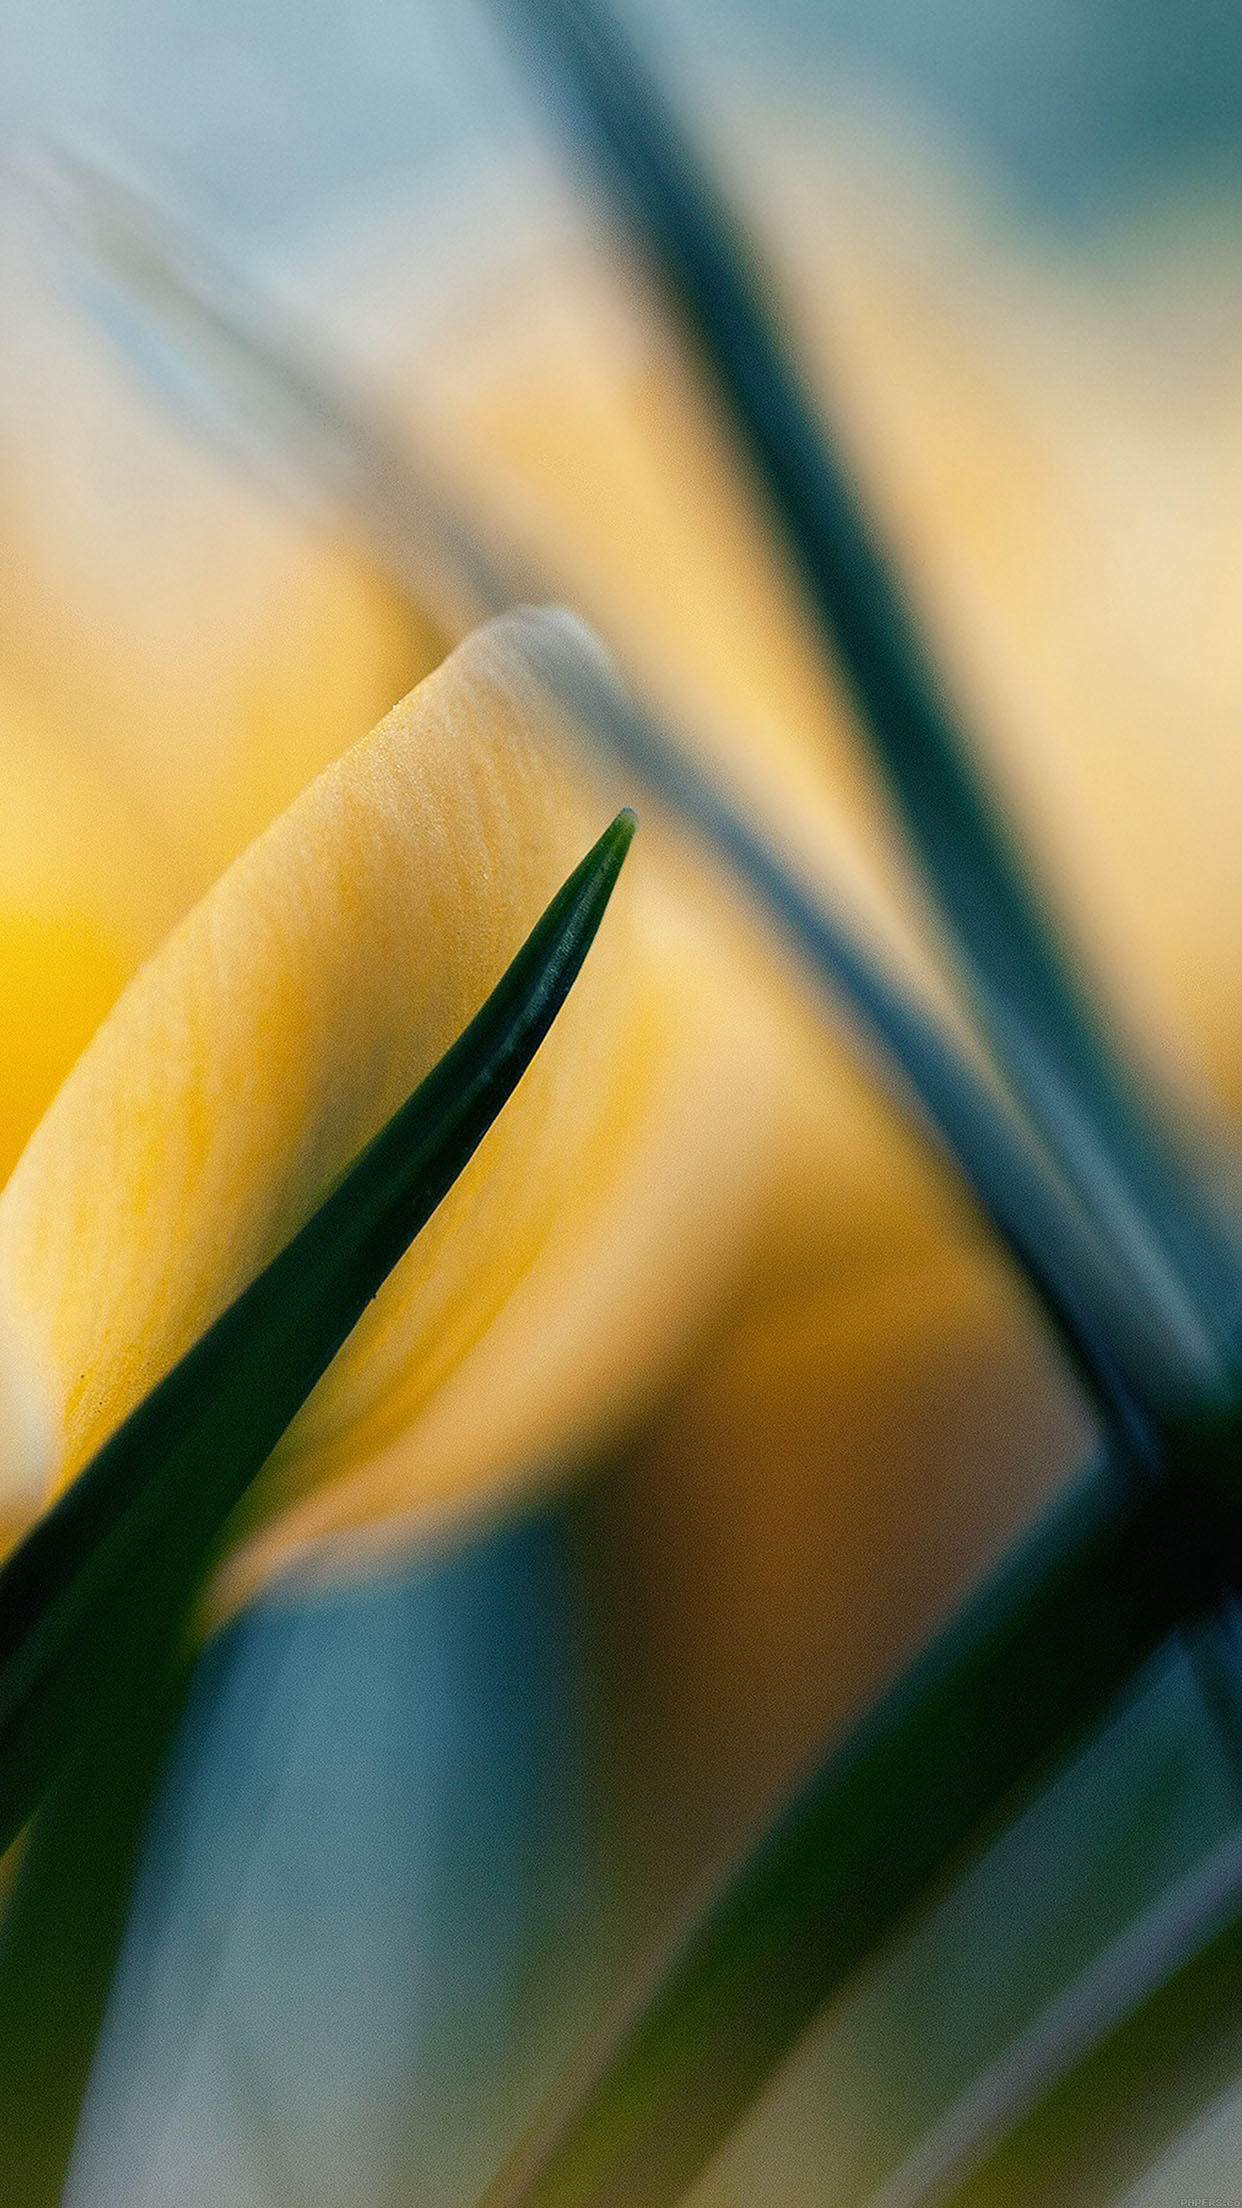 Wallpaper Yellow Crocus Flower Beauty Nature Android wallpaper